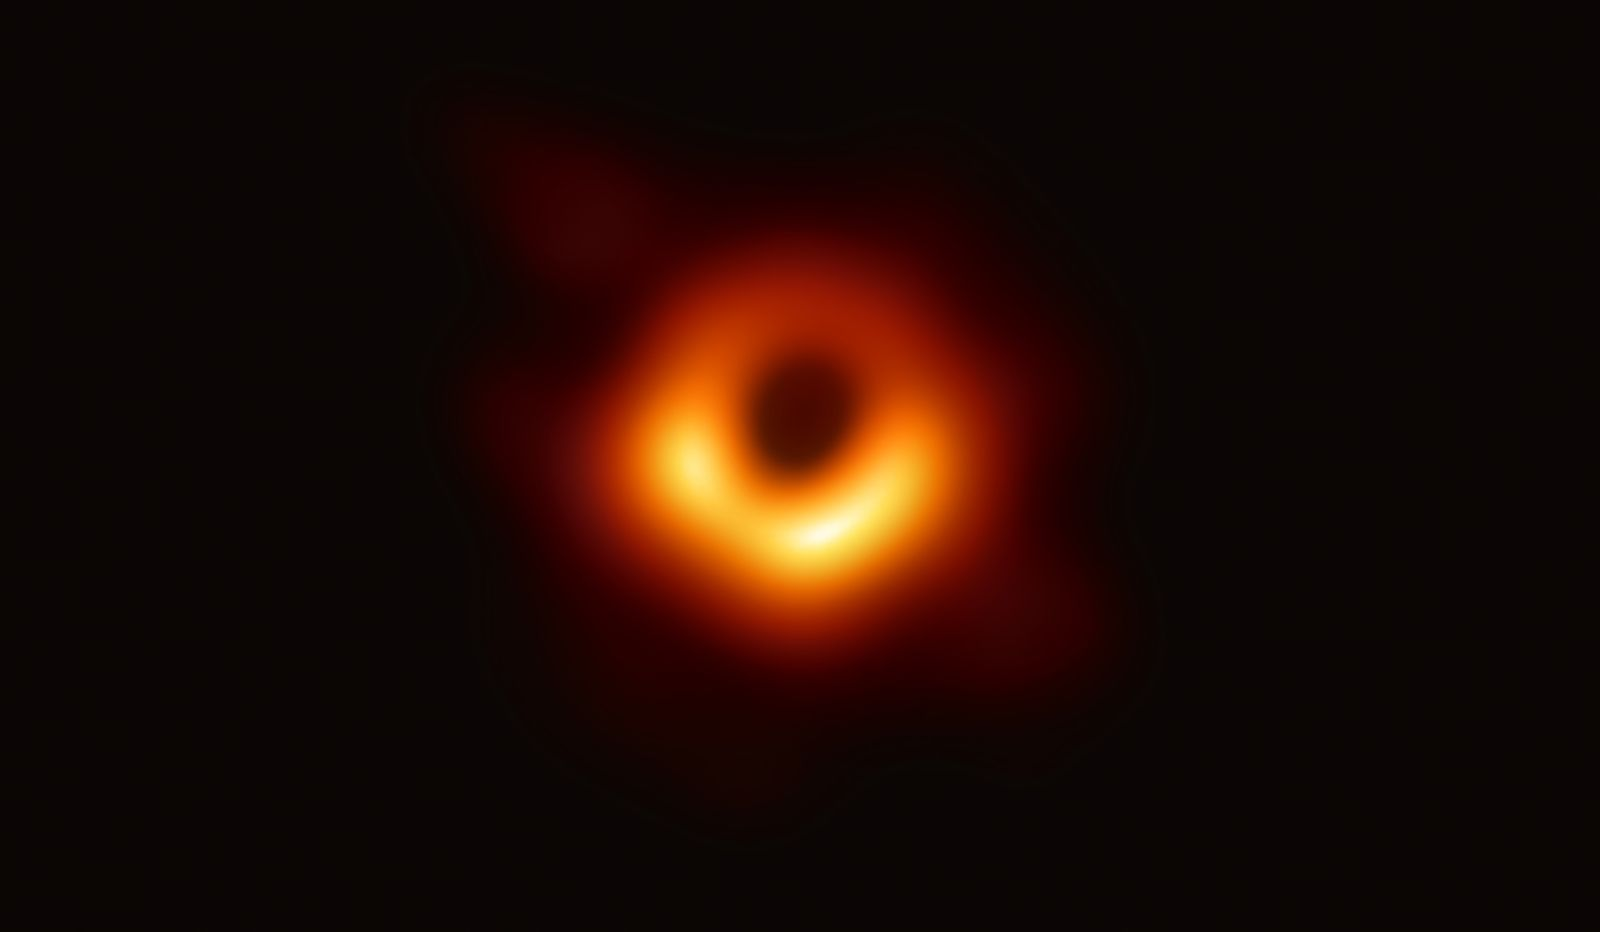 First Image of a Black Hole Revealed